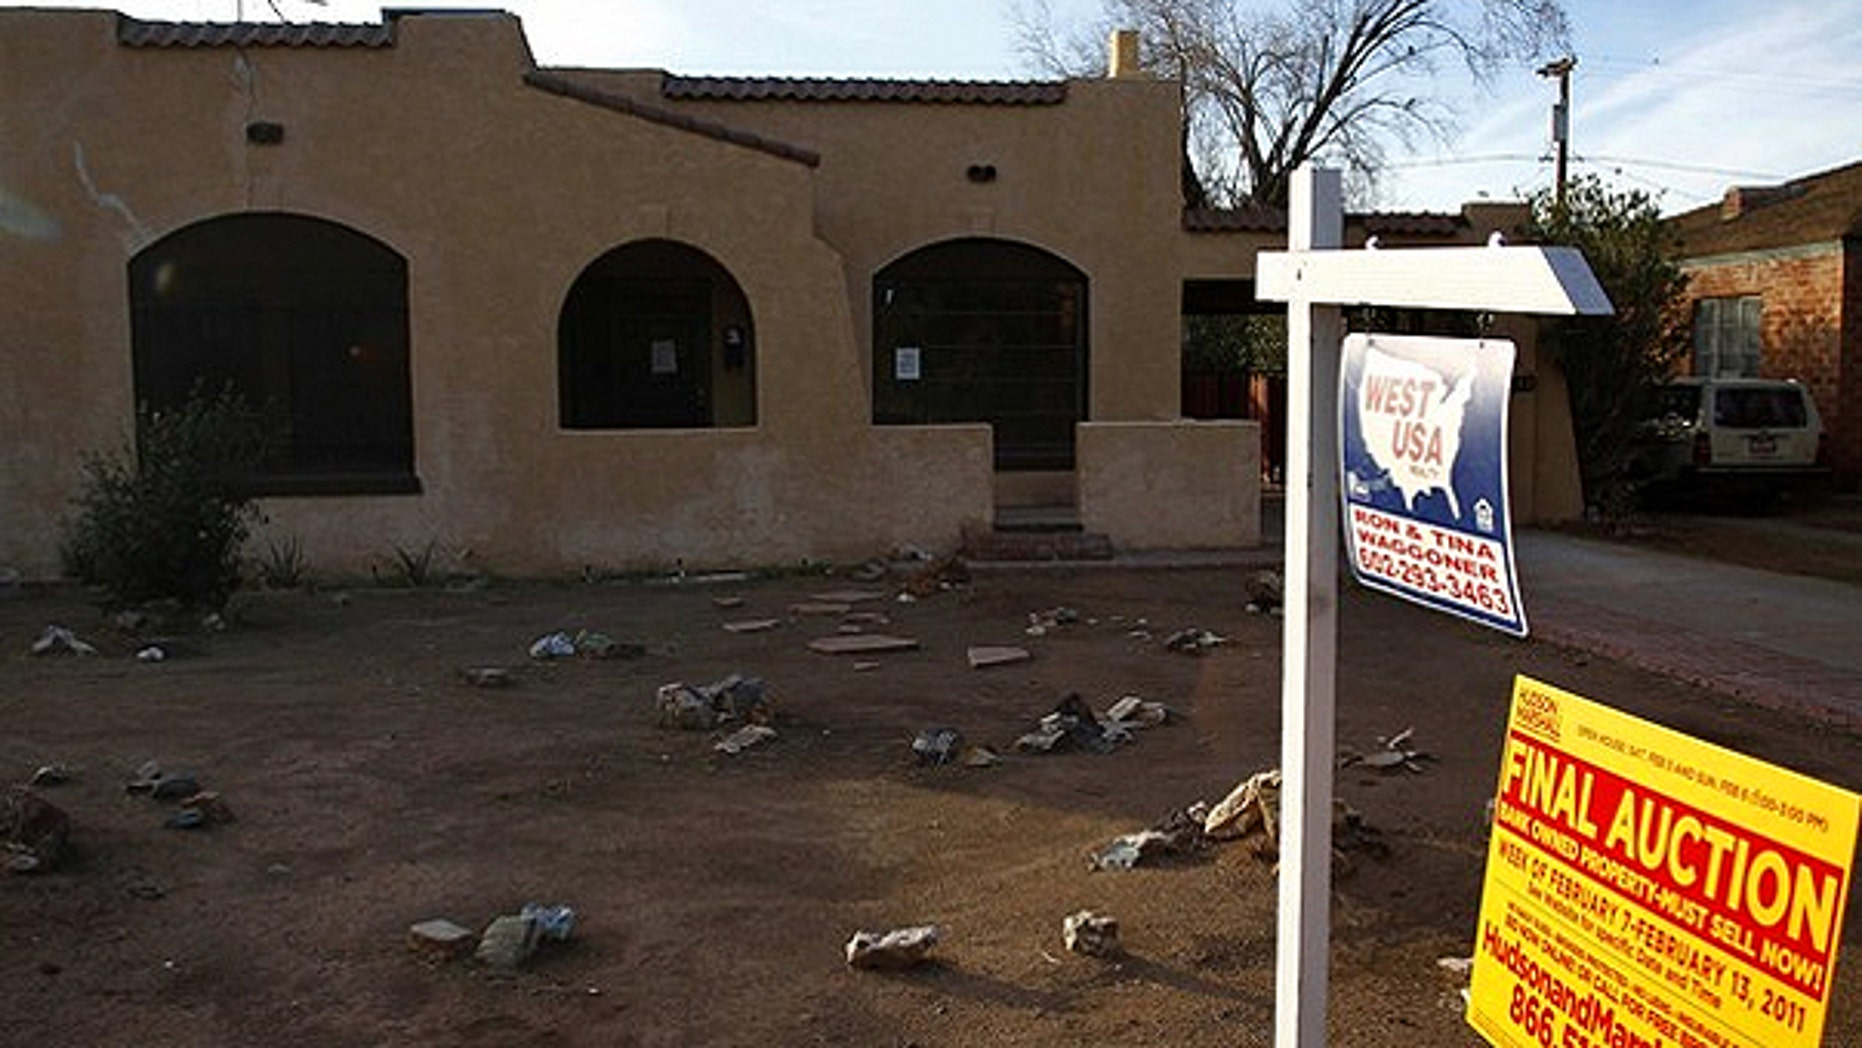 Jan. 4: A realtor and bank-owned sign is displayed near a house for sale in Phoenix, Arizona.